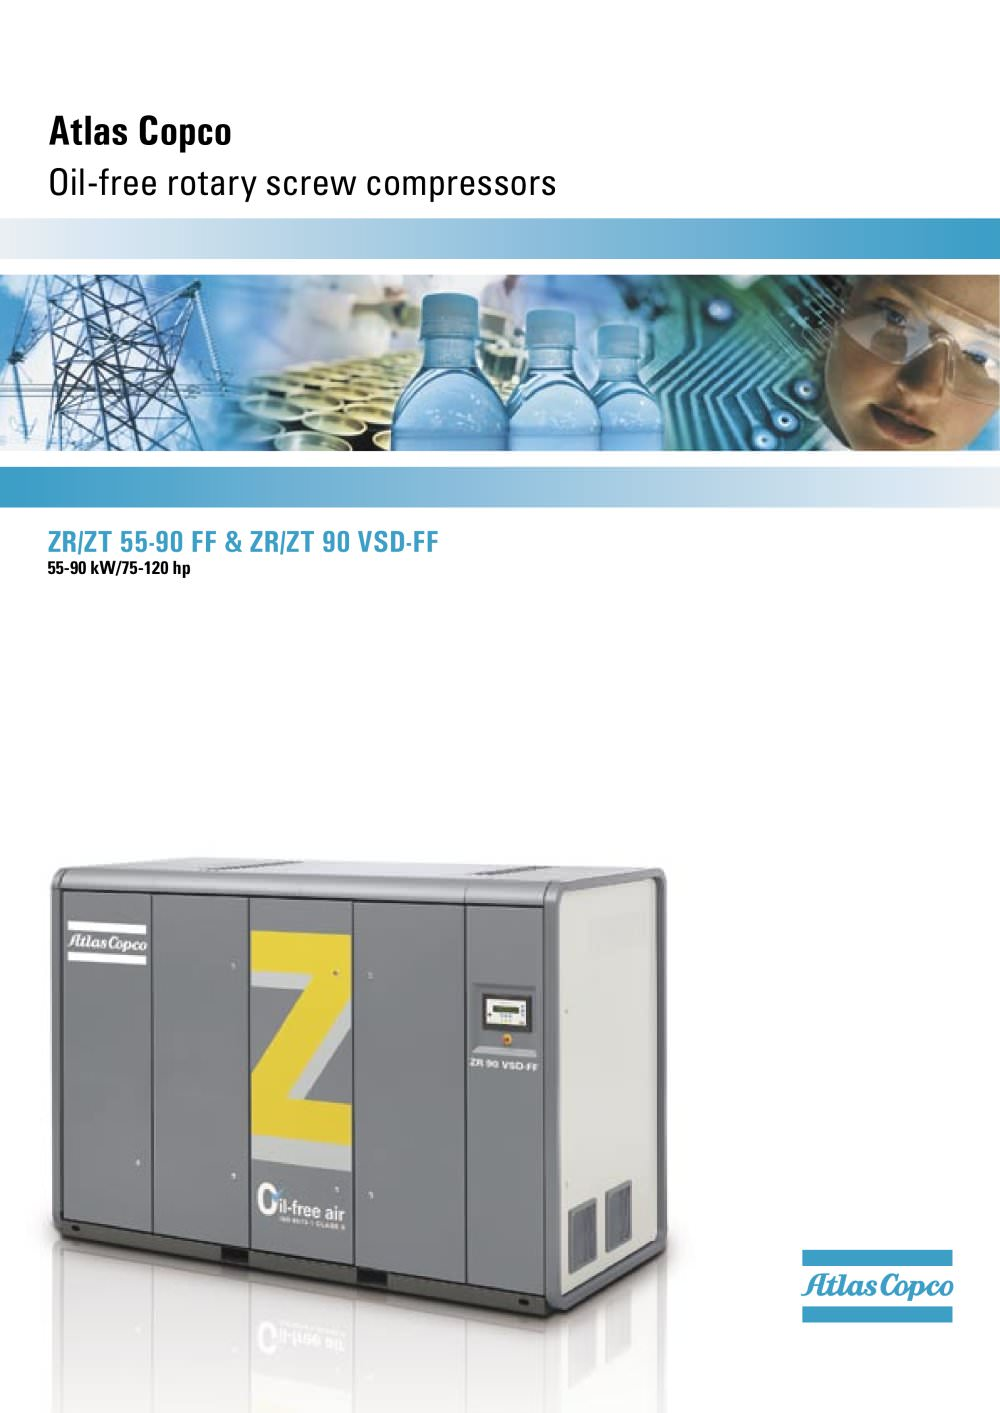 zr zt 55 90 ff zr zt 90 vsd ff 124964_1b zr zt 55 90 ff & zr zt 90 vsd ff atlas copco compressors usa atlas copco ga11 wiring diagram at fashall.co